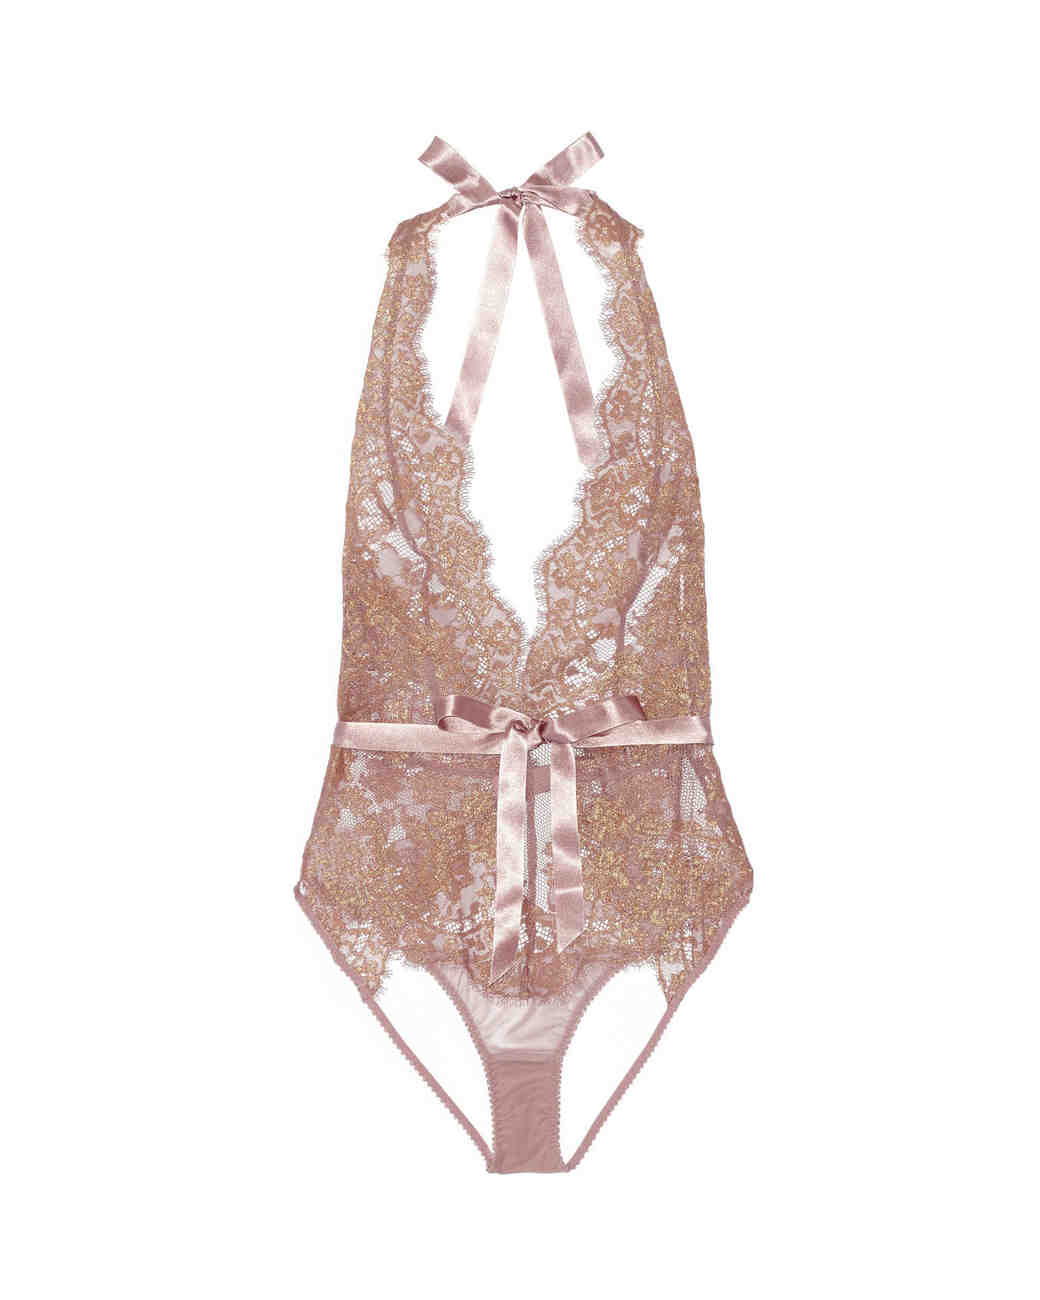 group-bachelorette-party-gifts-lagent-lingerie-0316.jpg